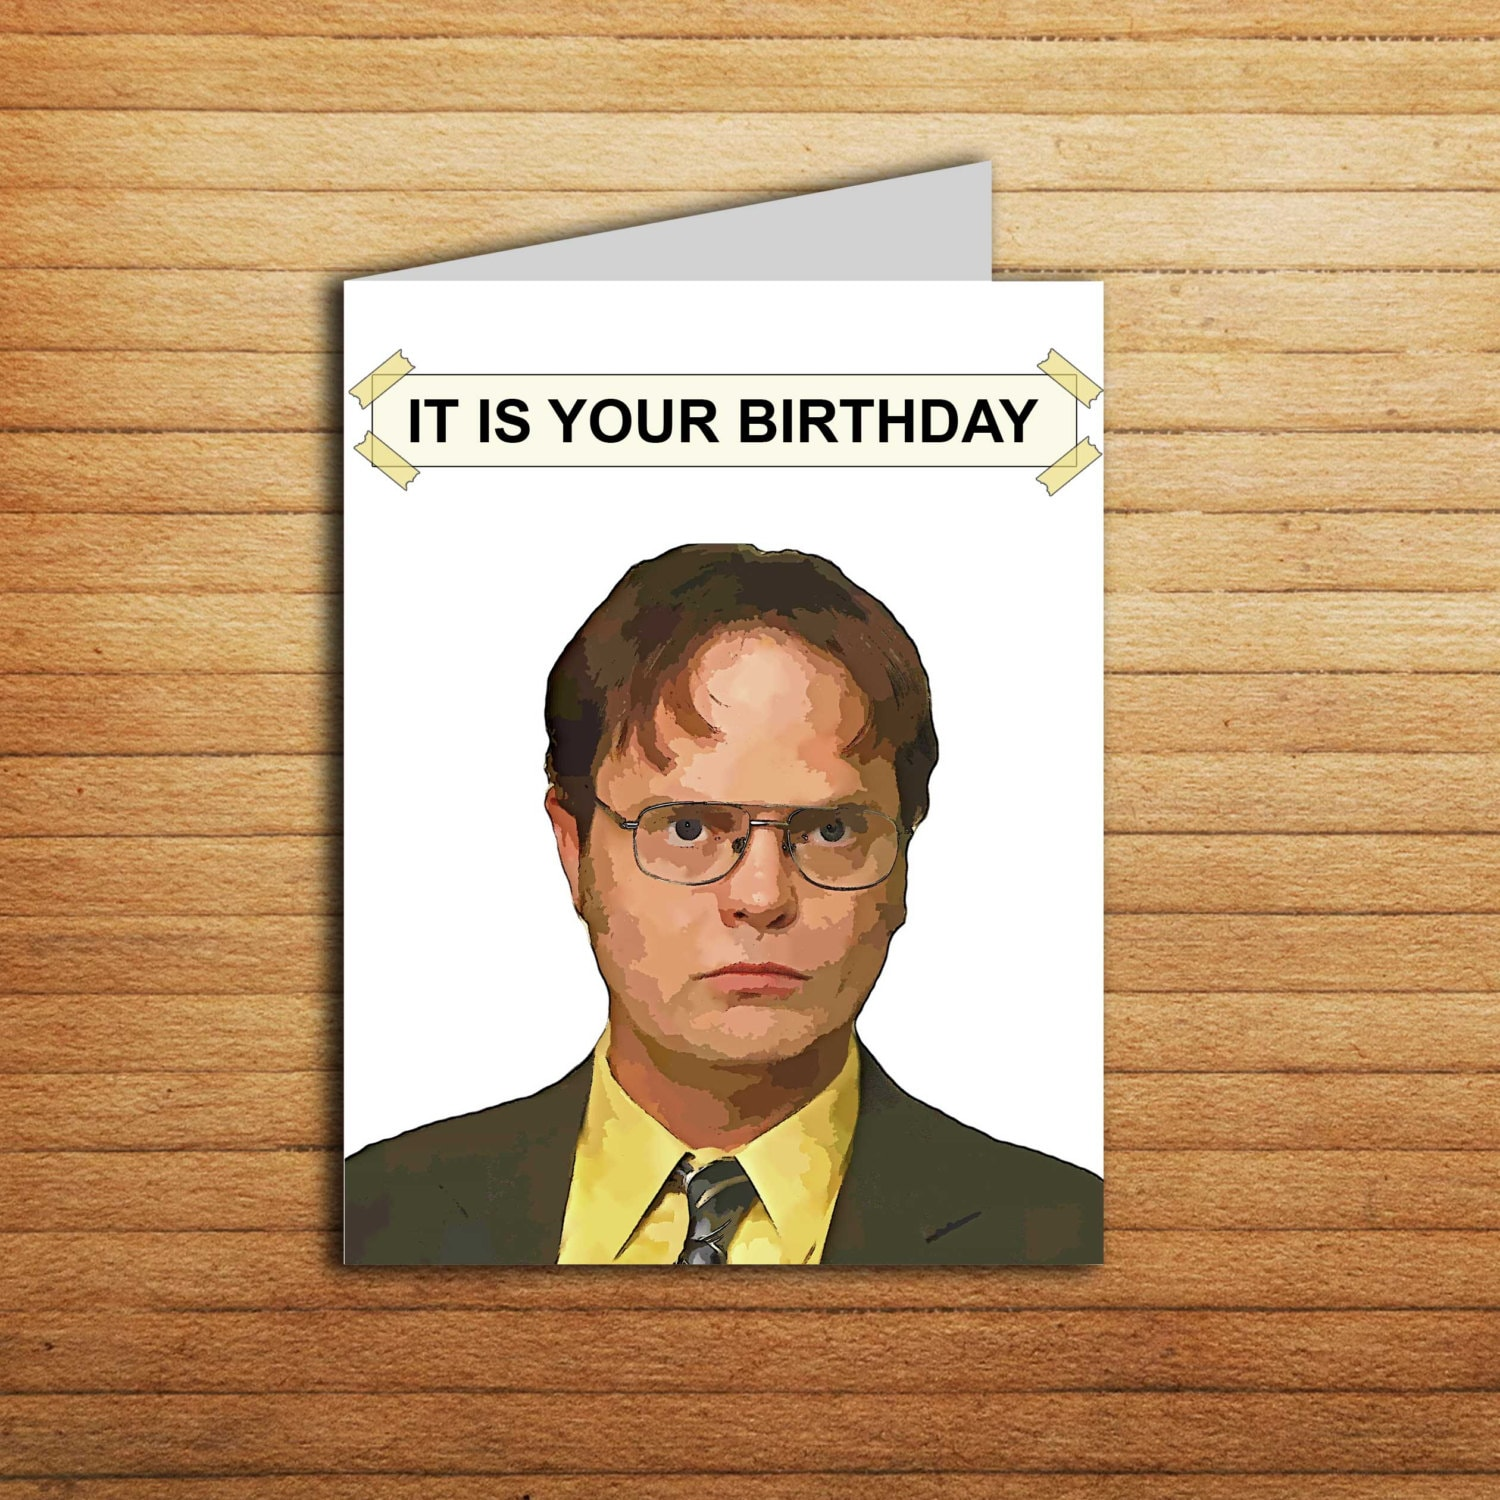 The office birthday card office tv show cards printable it is the office birthday card office tv show cards printable it is your birthday gift for coworker funny dwight schrute michael scott jim halpert bookmarktalkfo Image collections